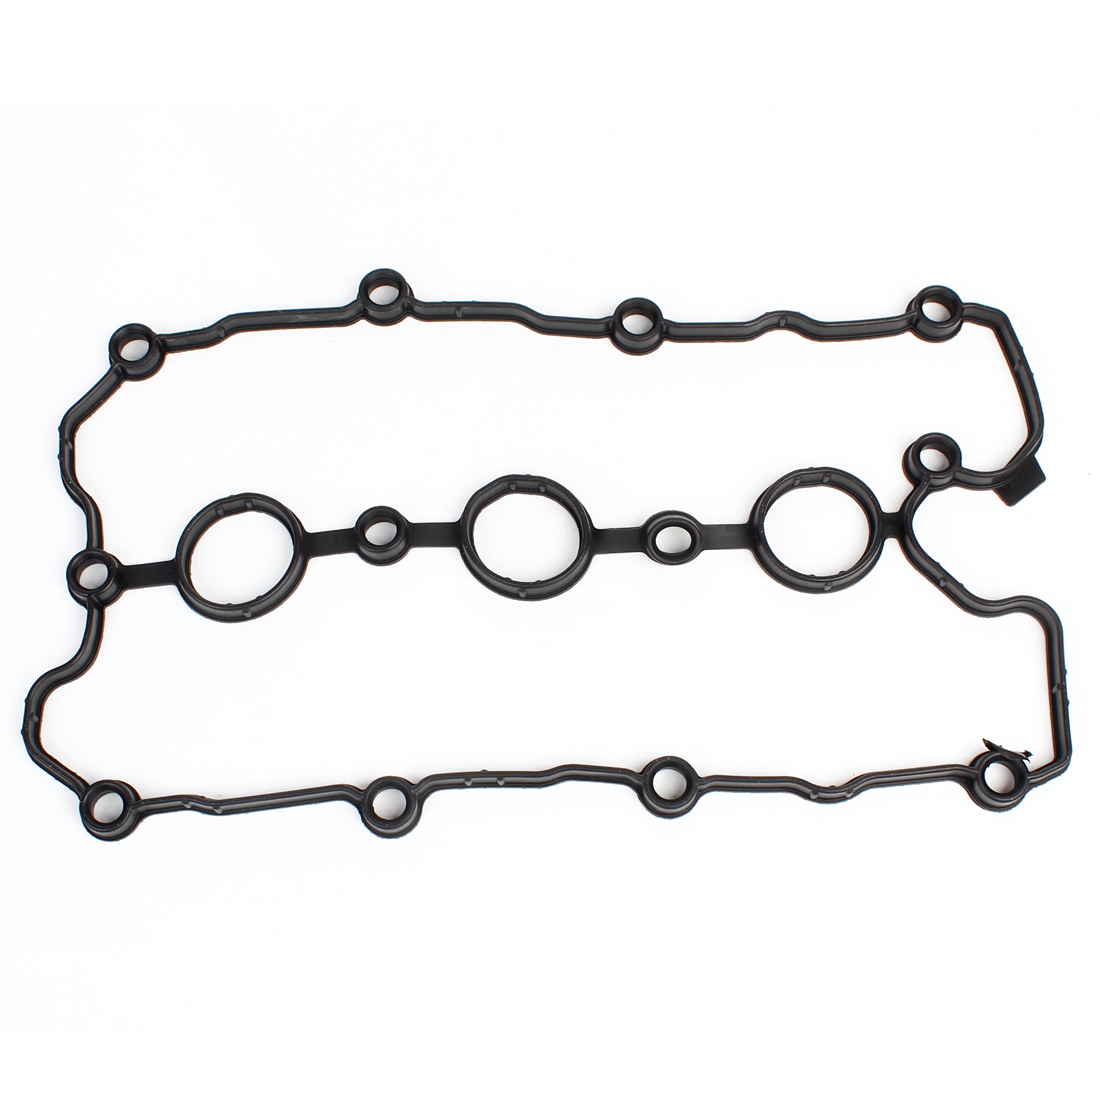 06E 103 484G Car Automotive Valve Cover Gasket Repair Part